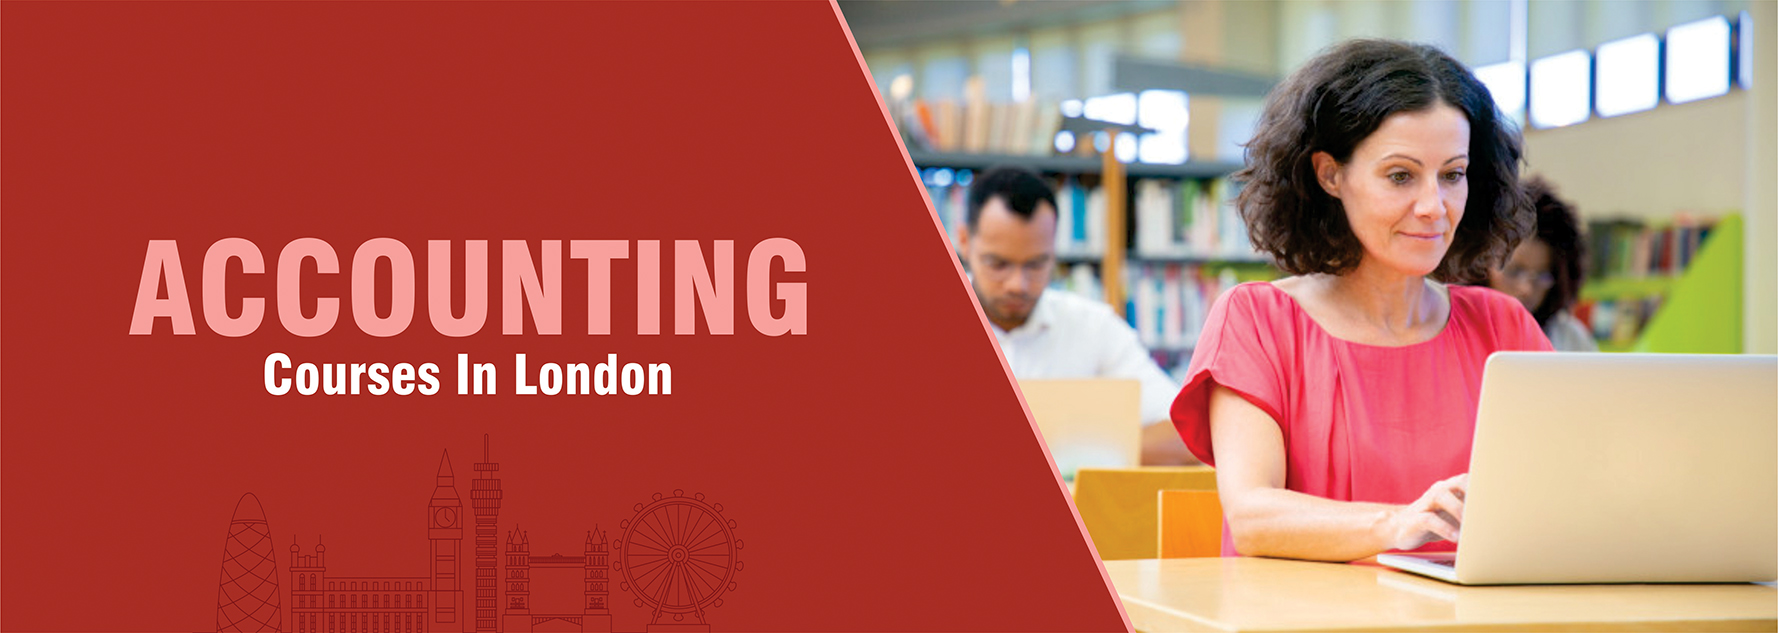 accounting-courses-in-london